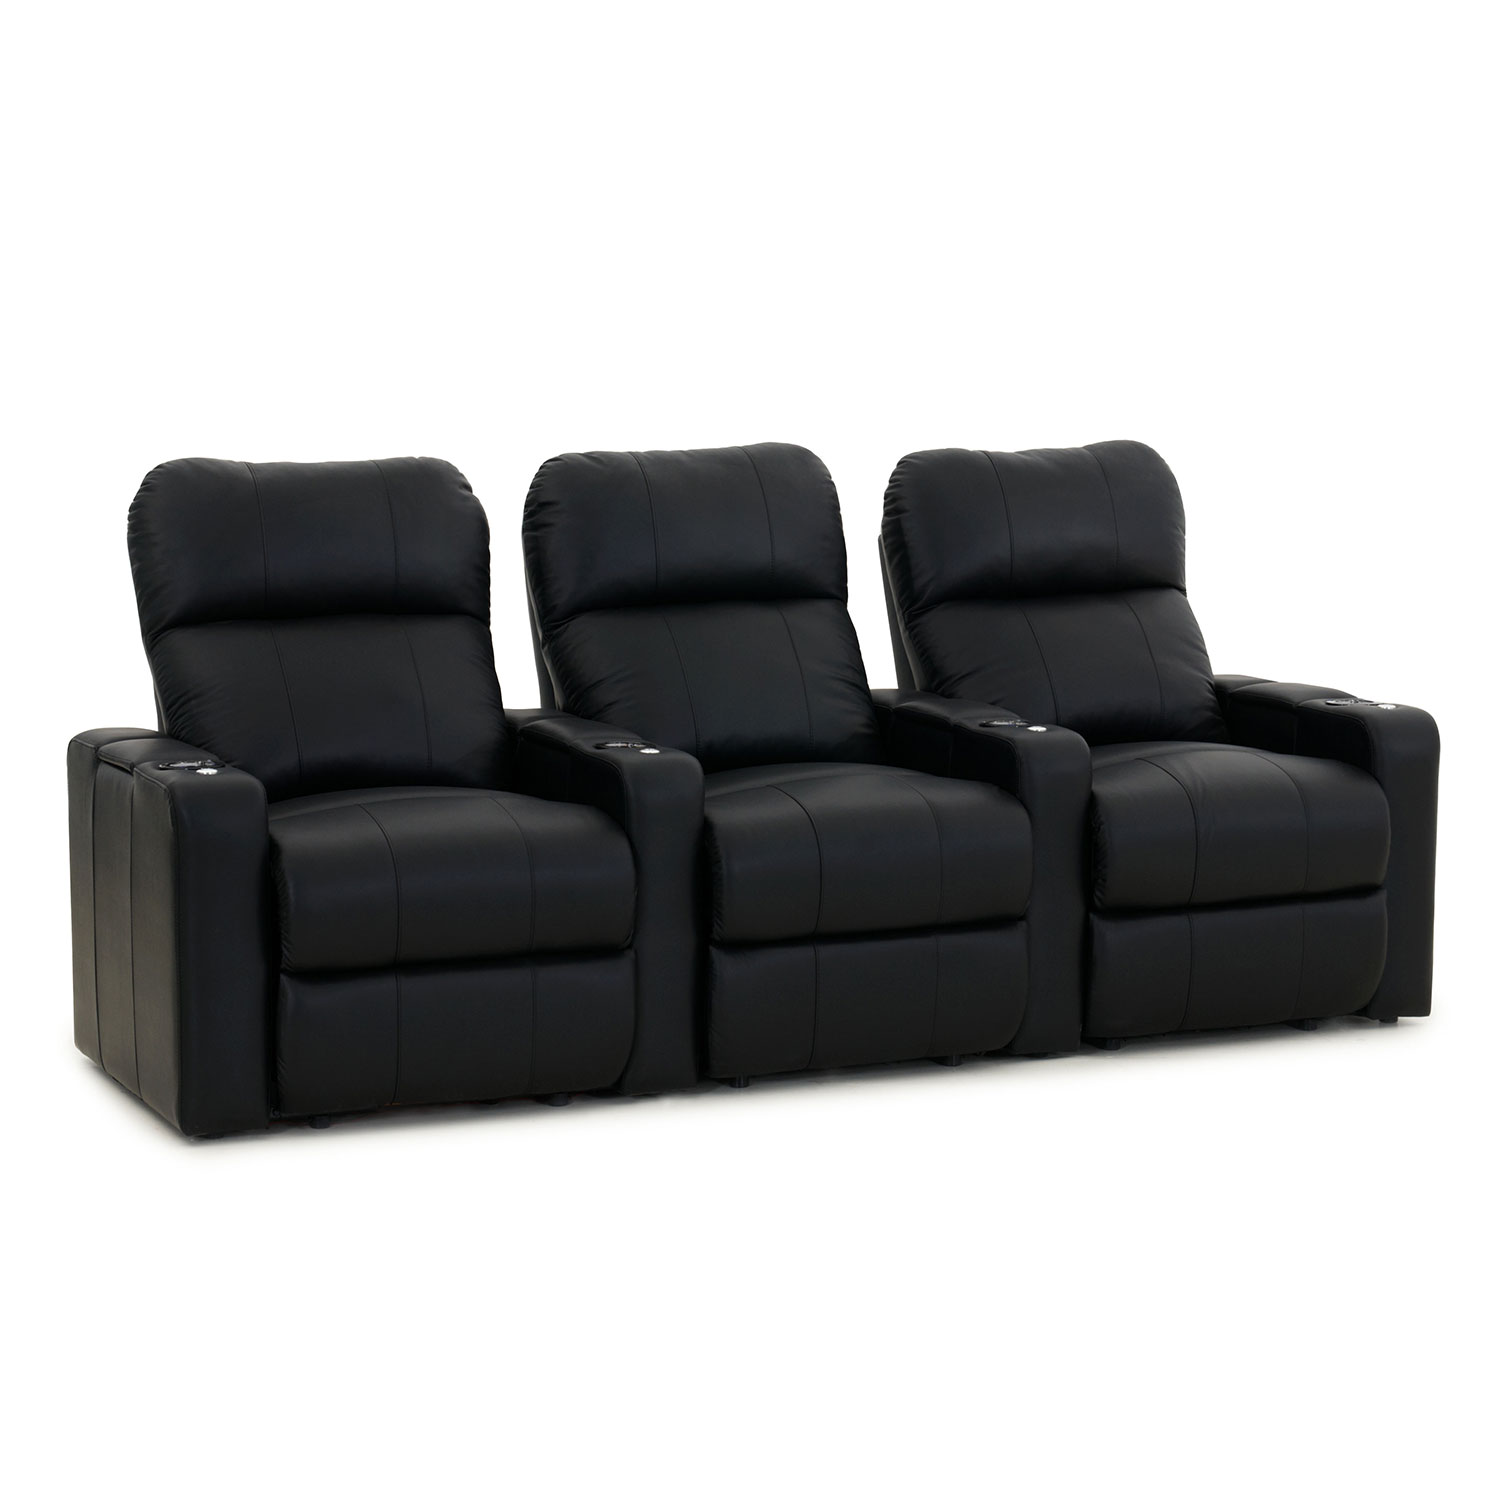 Turbo 3 Seat Bonded Leather Power Recliner Home Theatre Seating